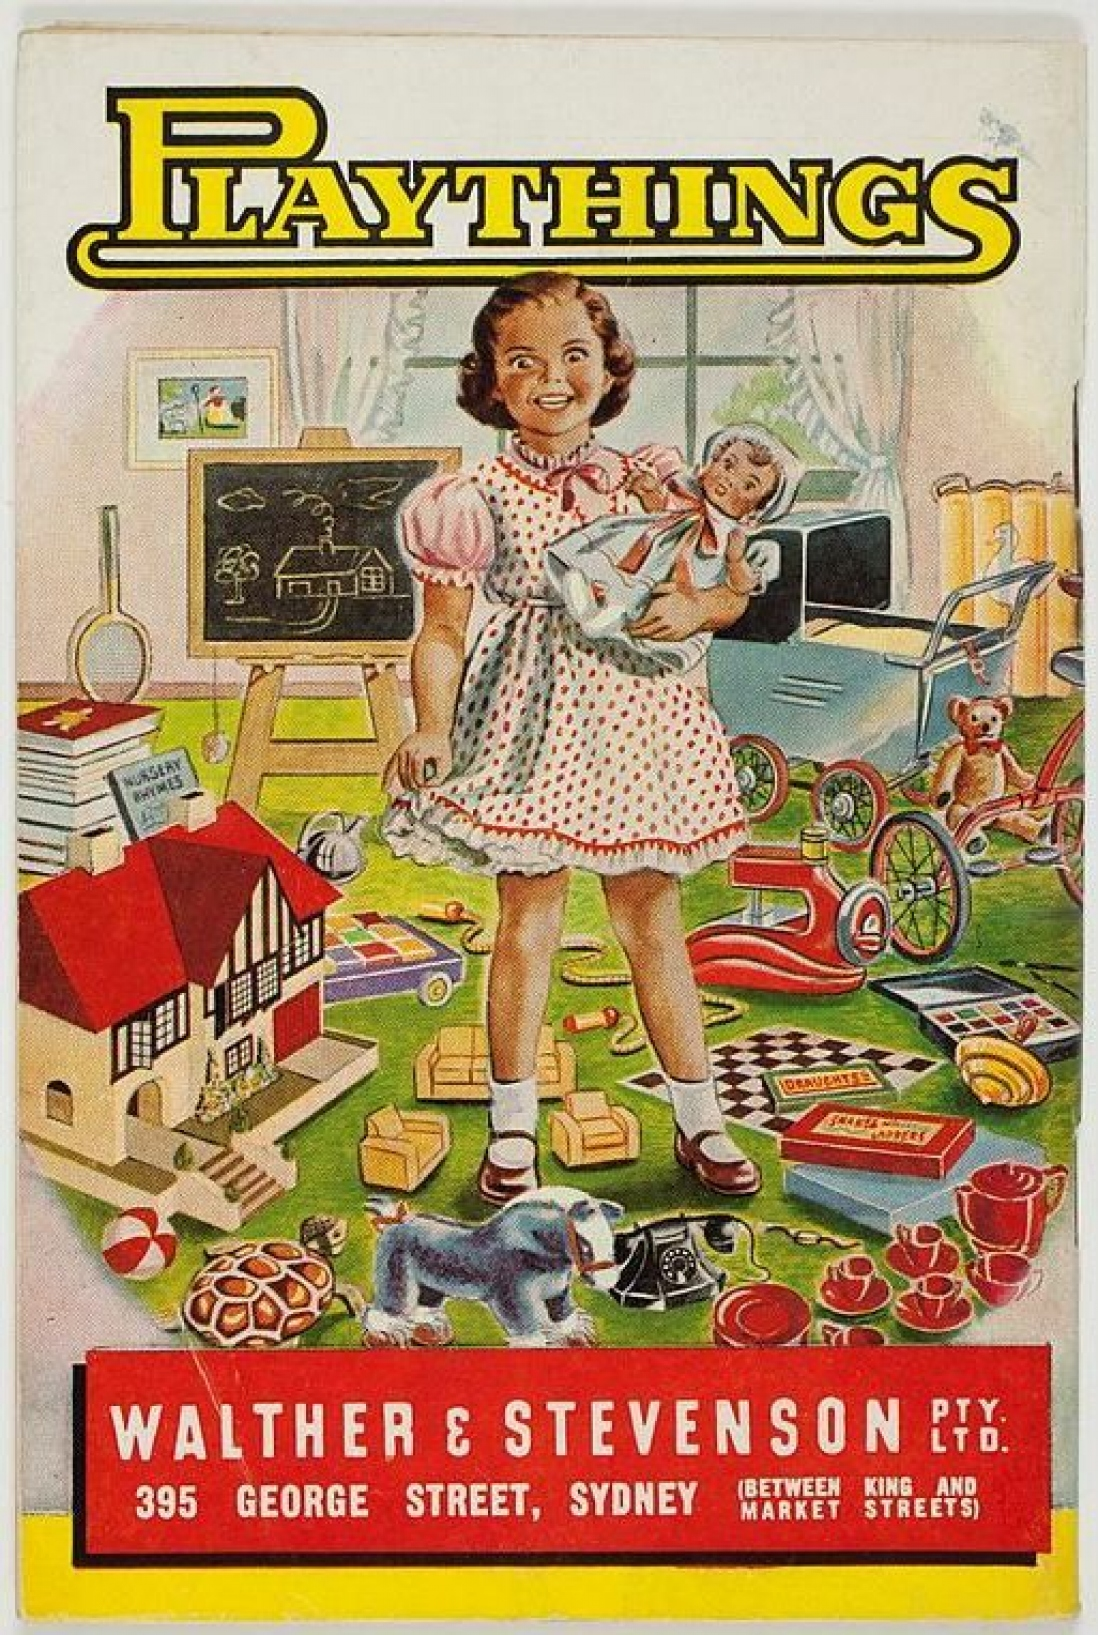 Back cover of Playthings catalogue showing girl with dolls